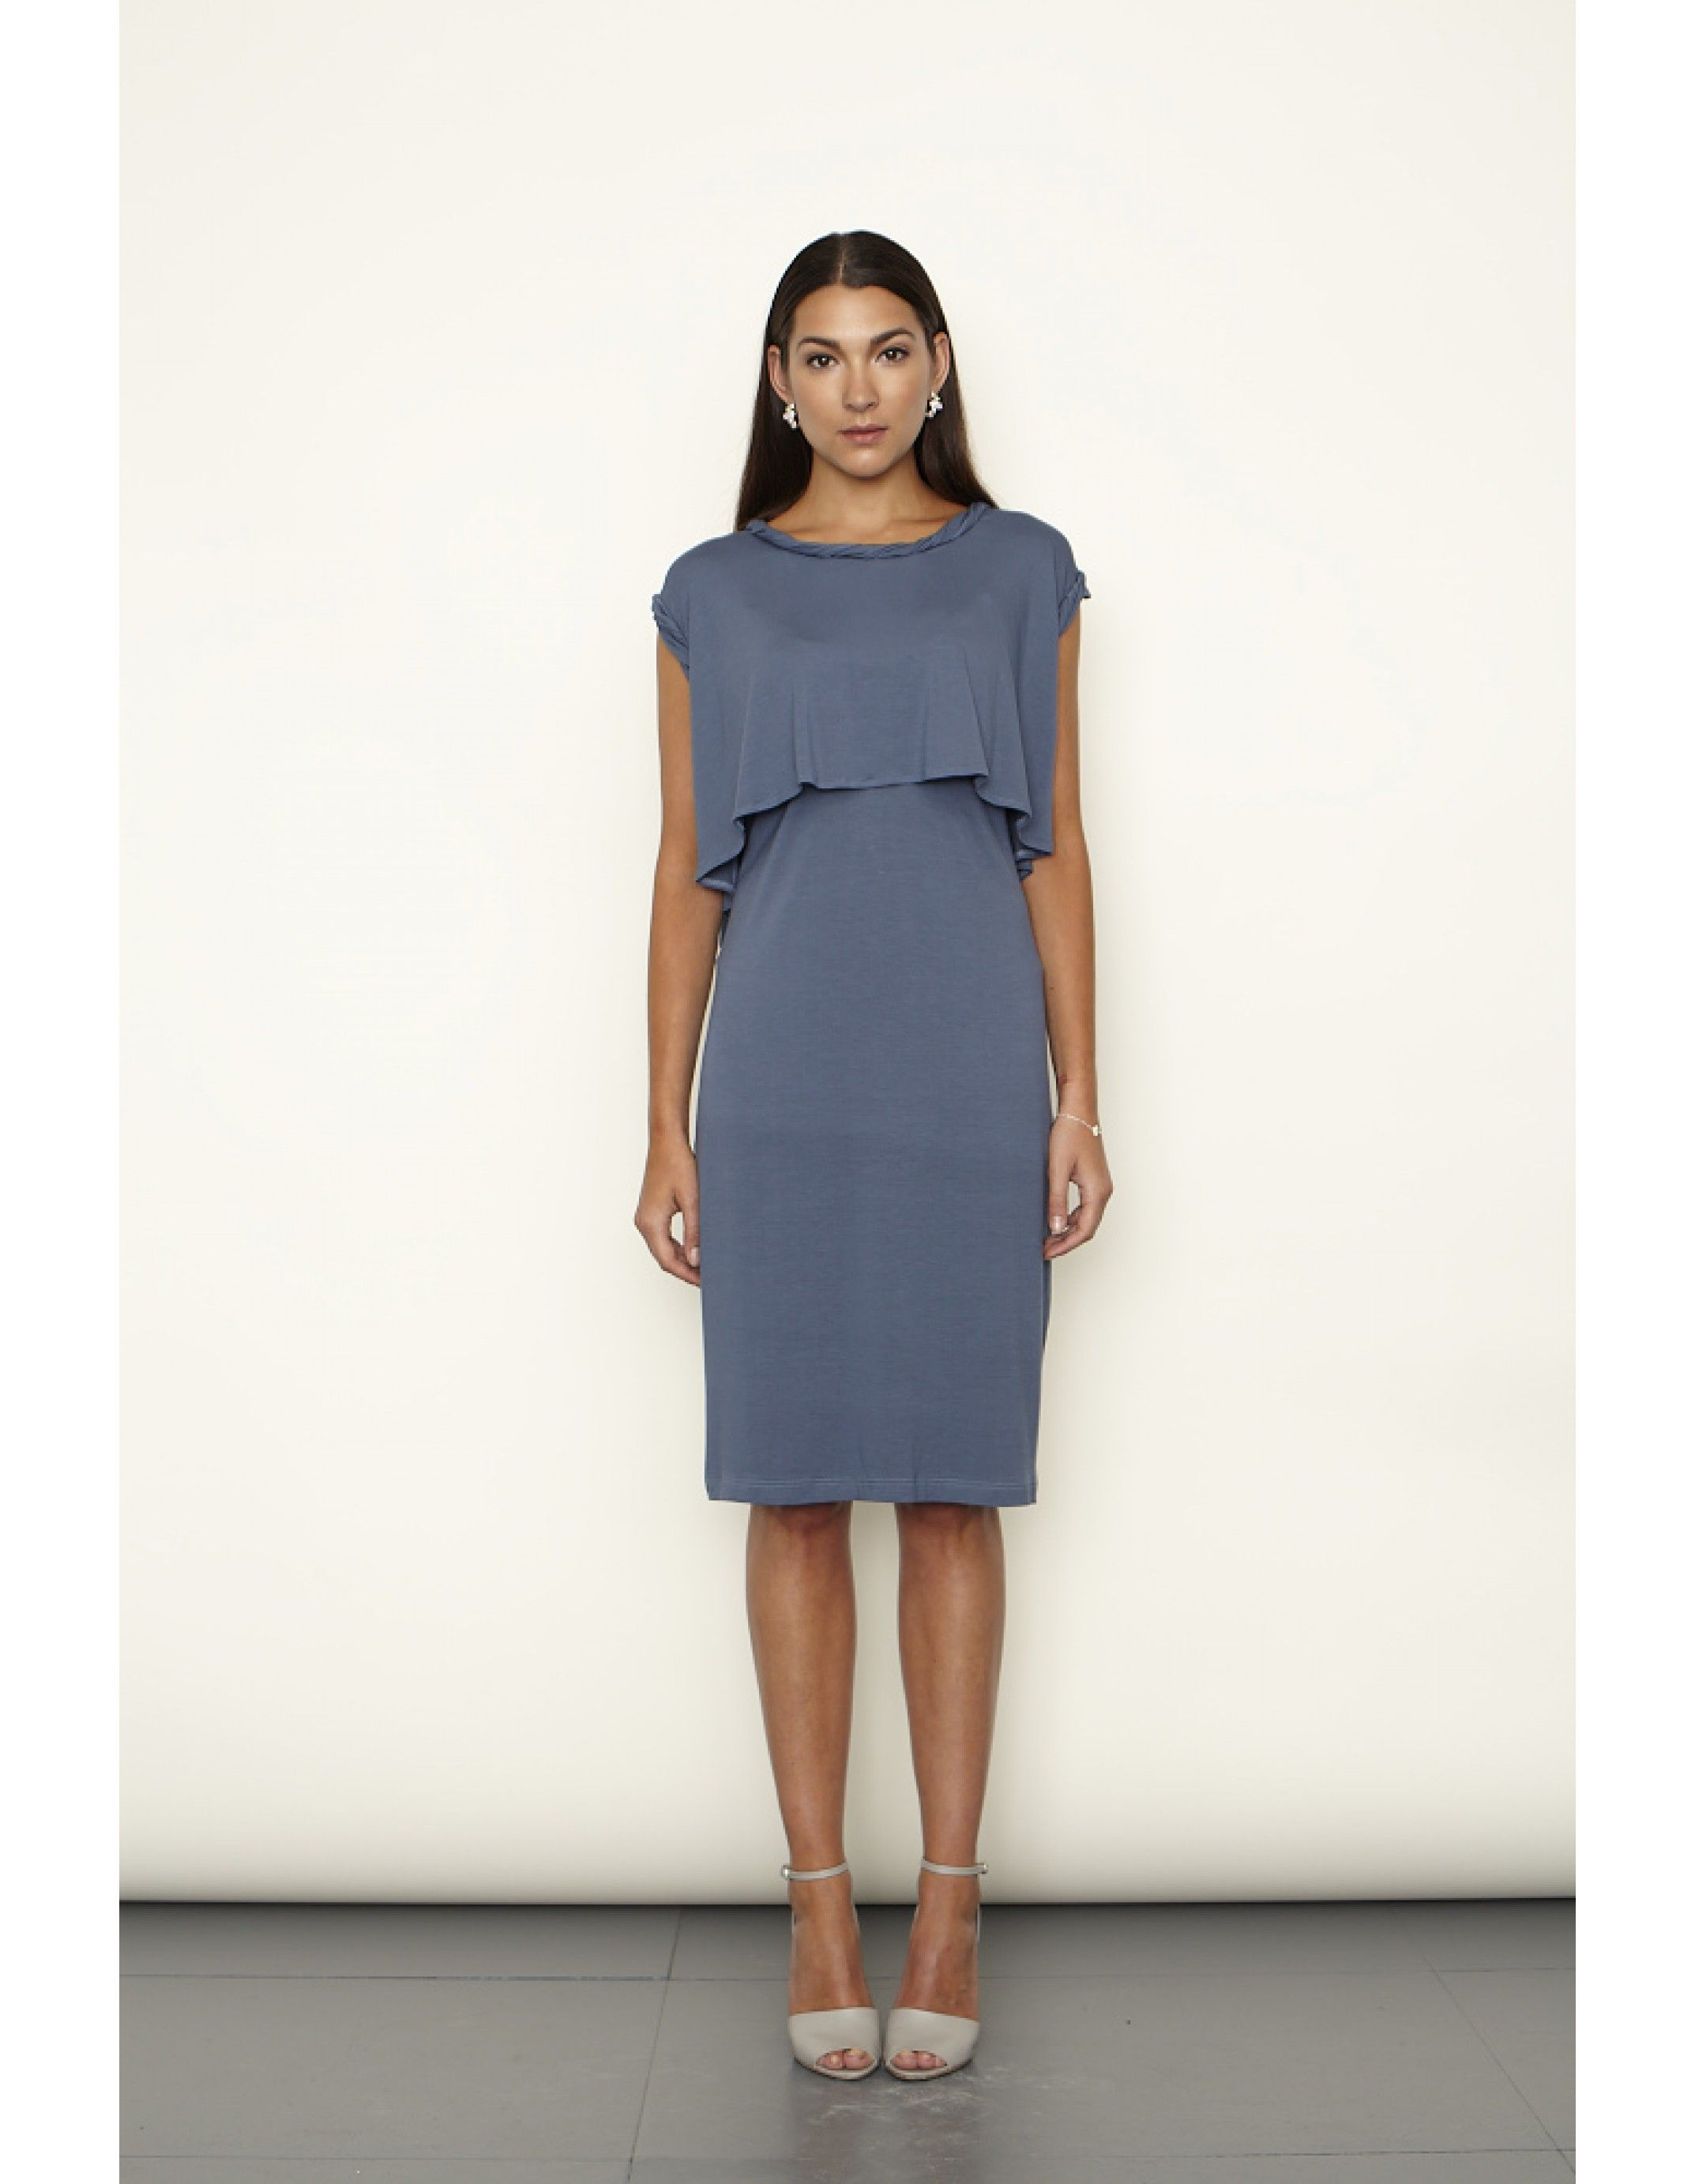 Twisted Neck Detail Layered Nursing Dress available in French Navy and White.   Keungzai, designed and made in the UK. For style-savvy women, mothers and mums-to-be.  View & shop: http://www.keungzai.com/Shop-by-collection/Spring-Summer-2013-Collection/Twisted-Neck-Detail-Layered-Nursing-Dress